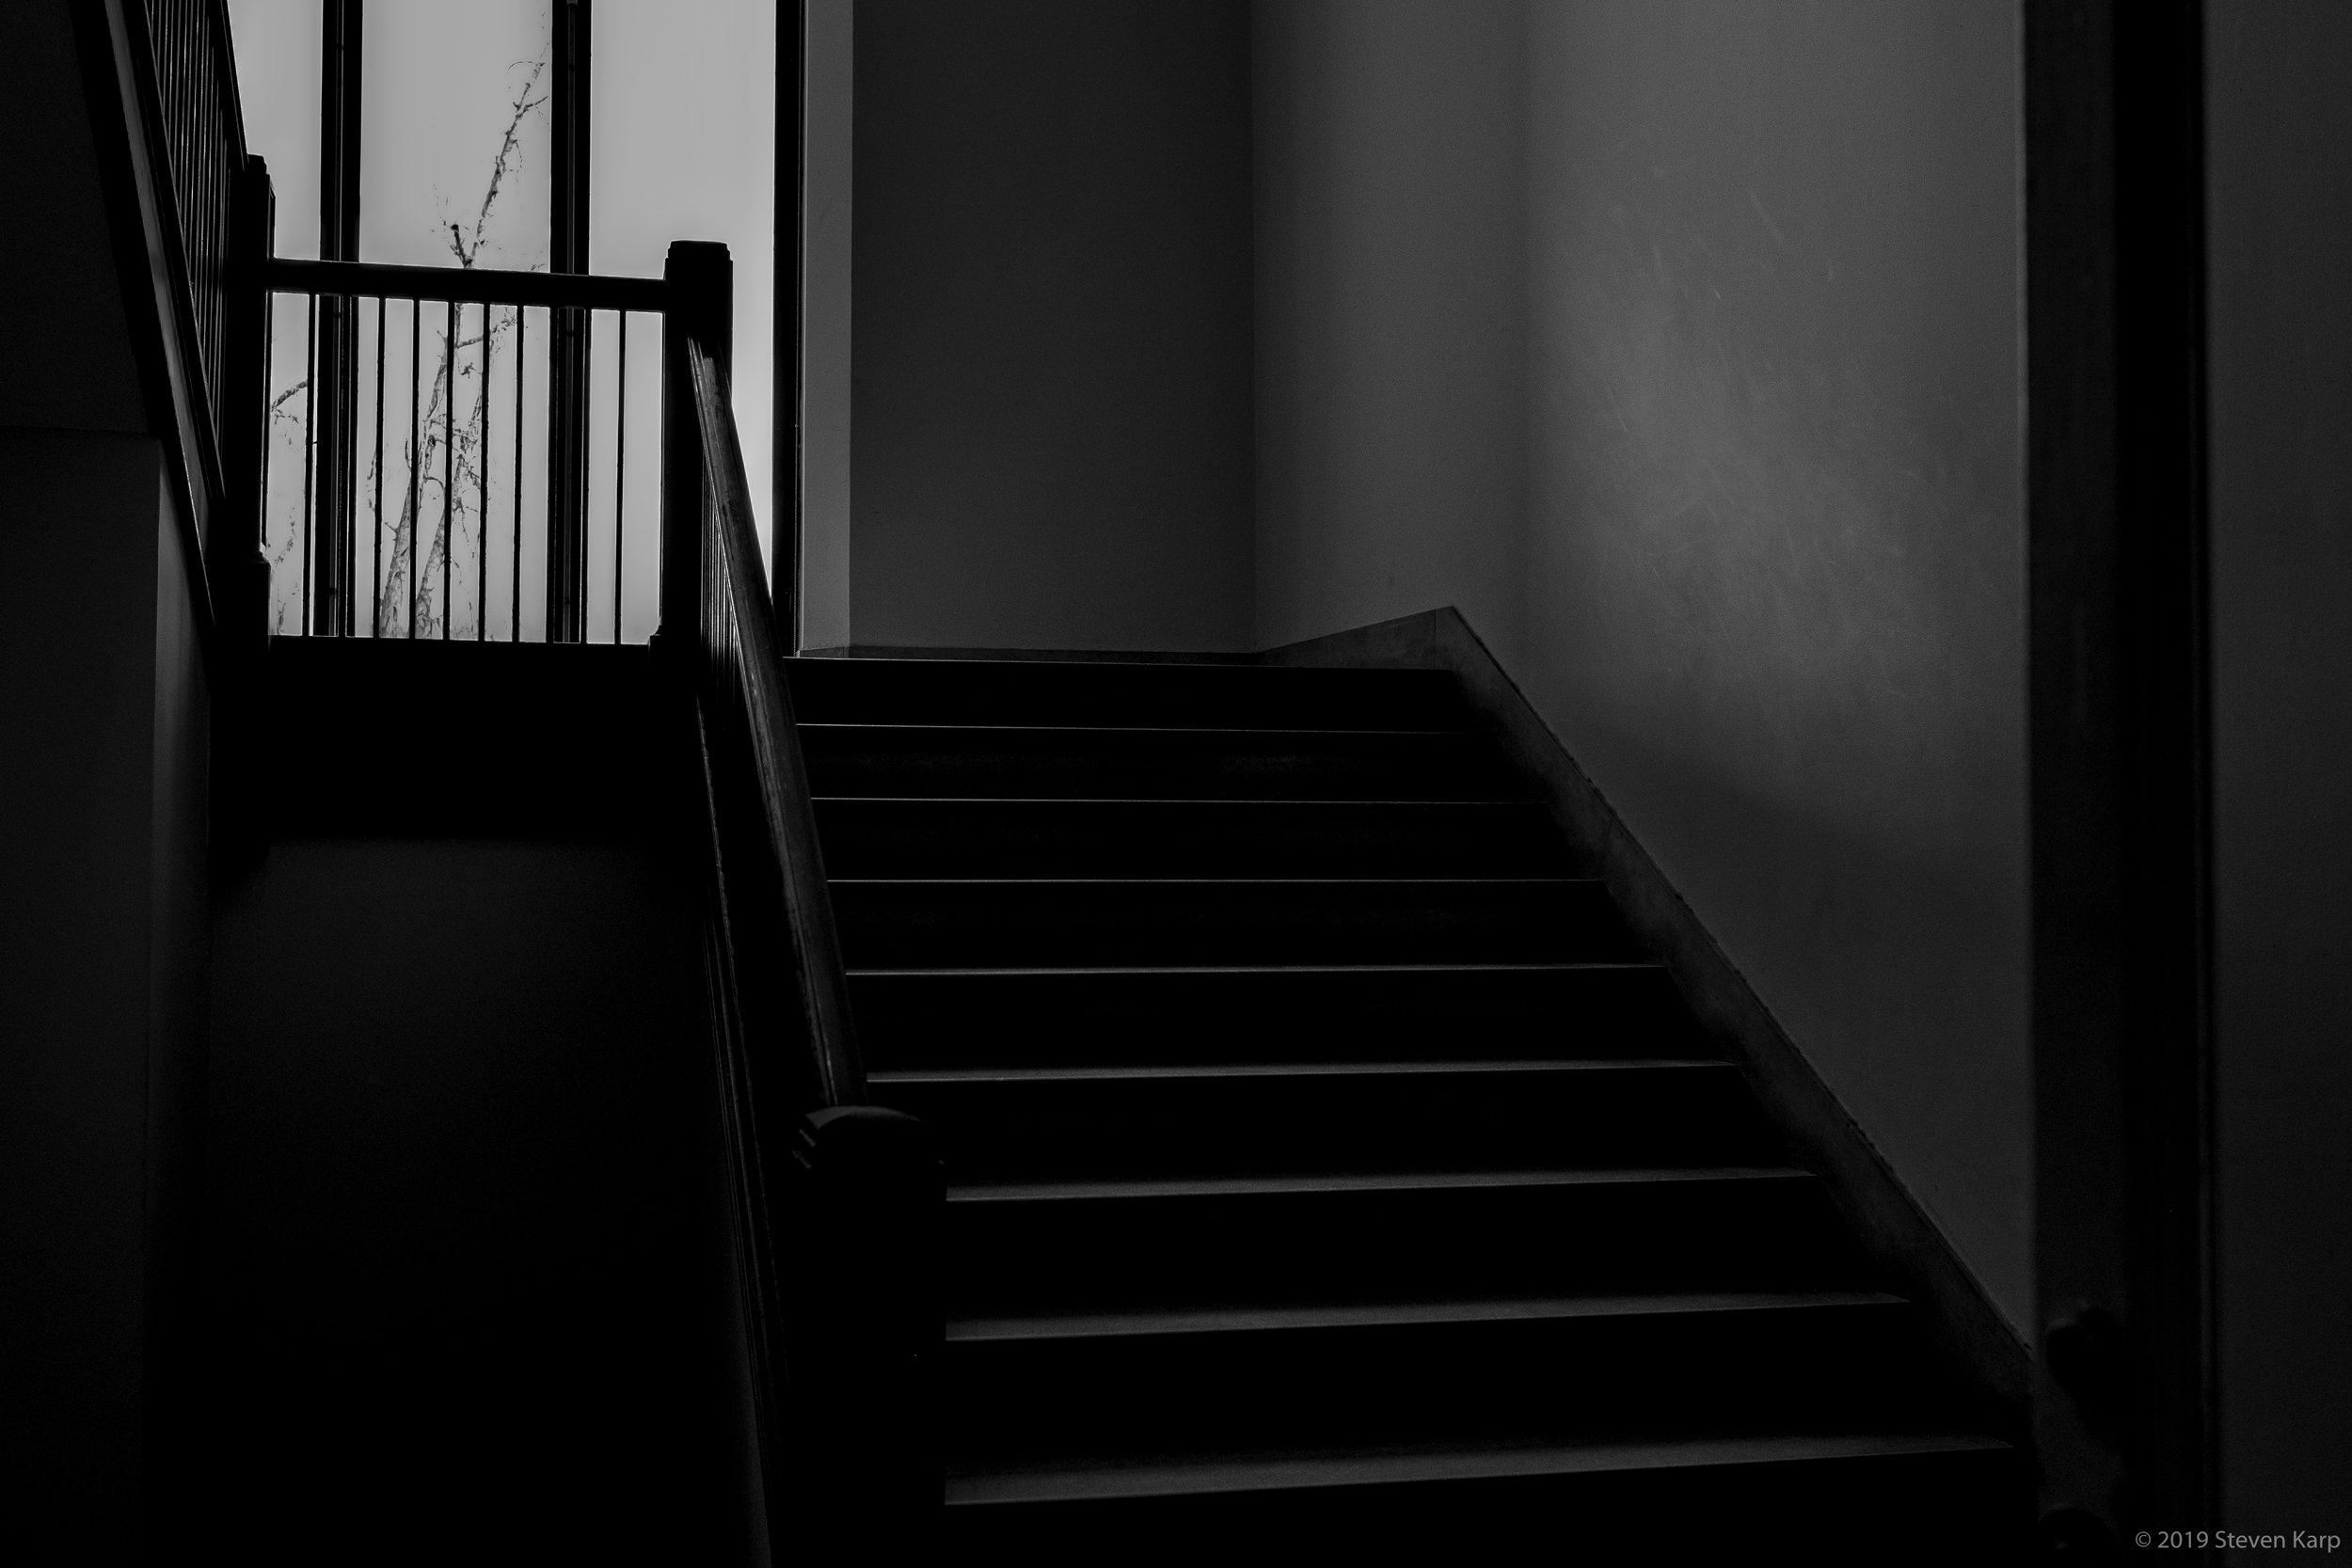 Lonely Staircase ©2019 S. Karp